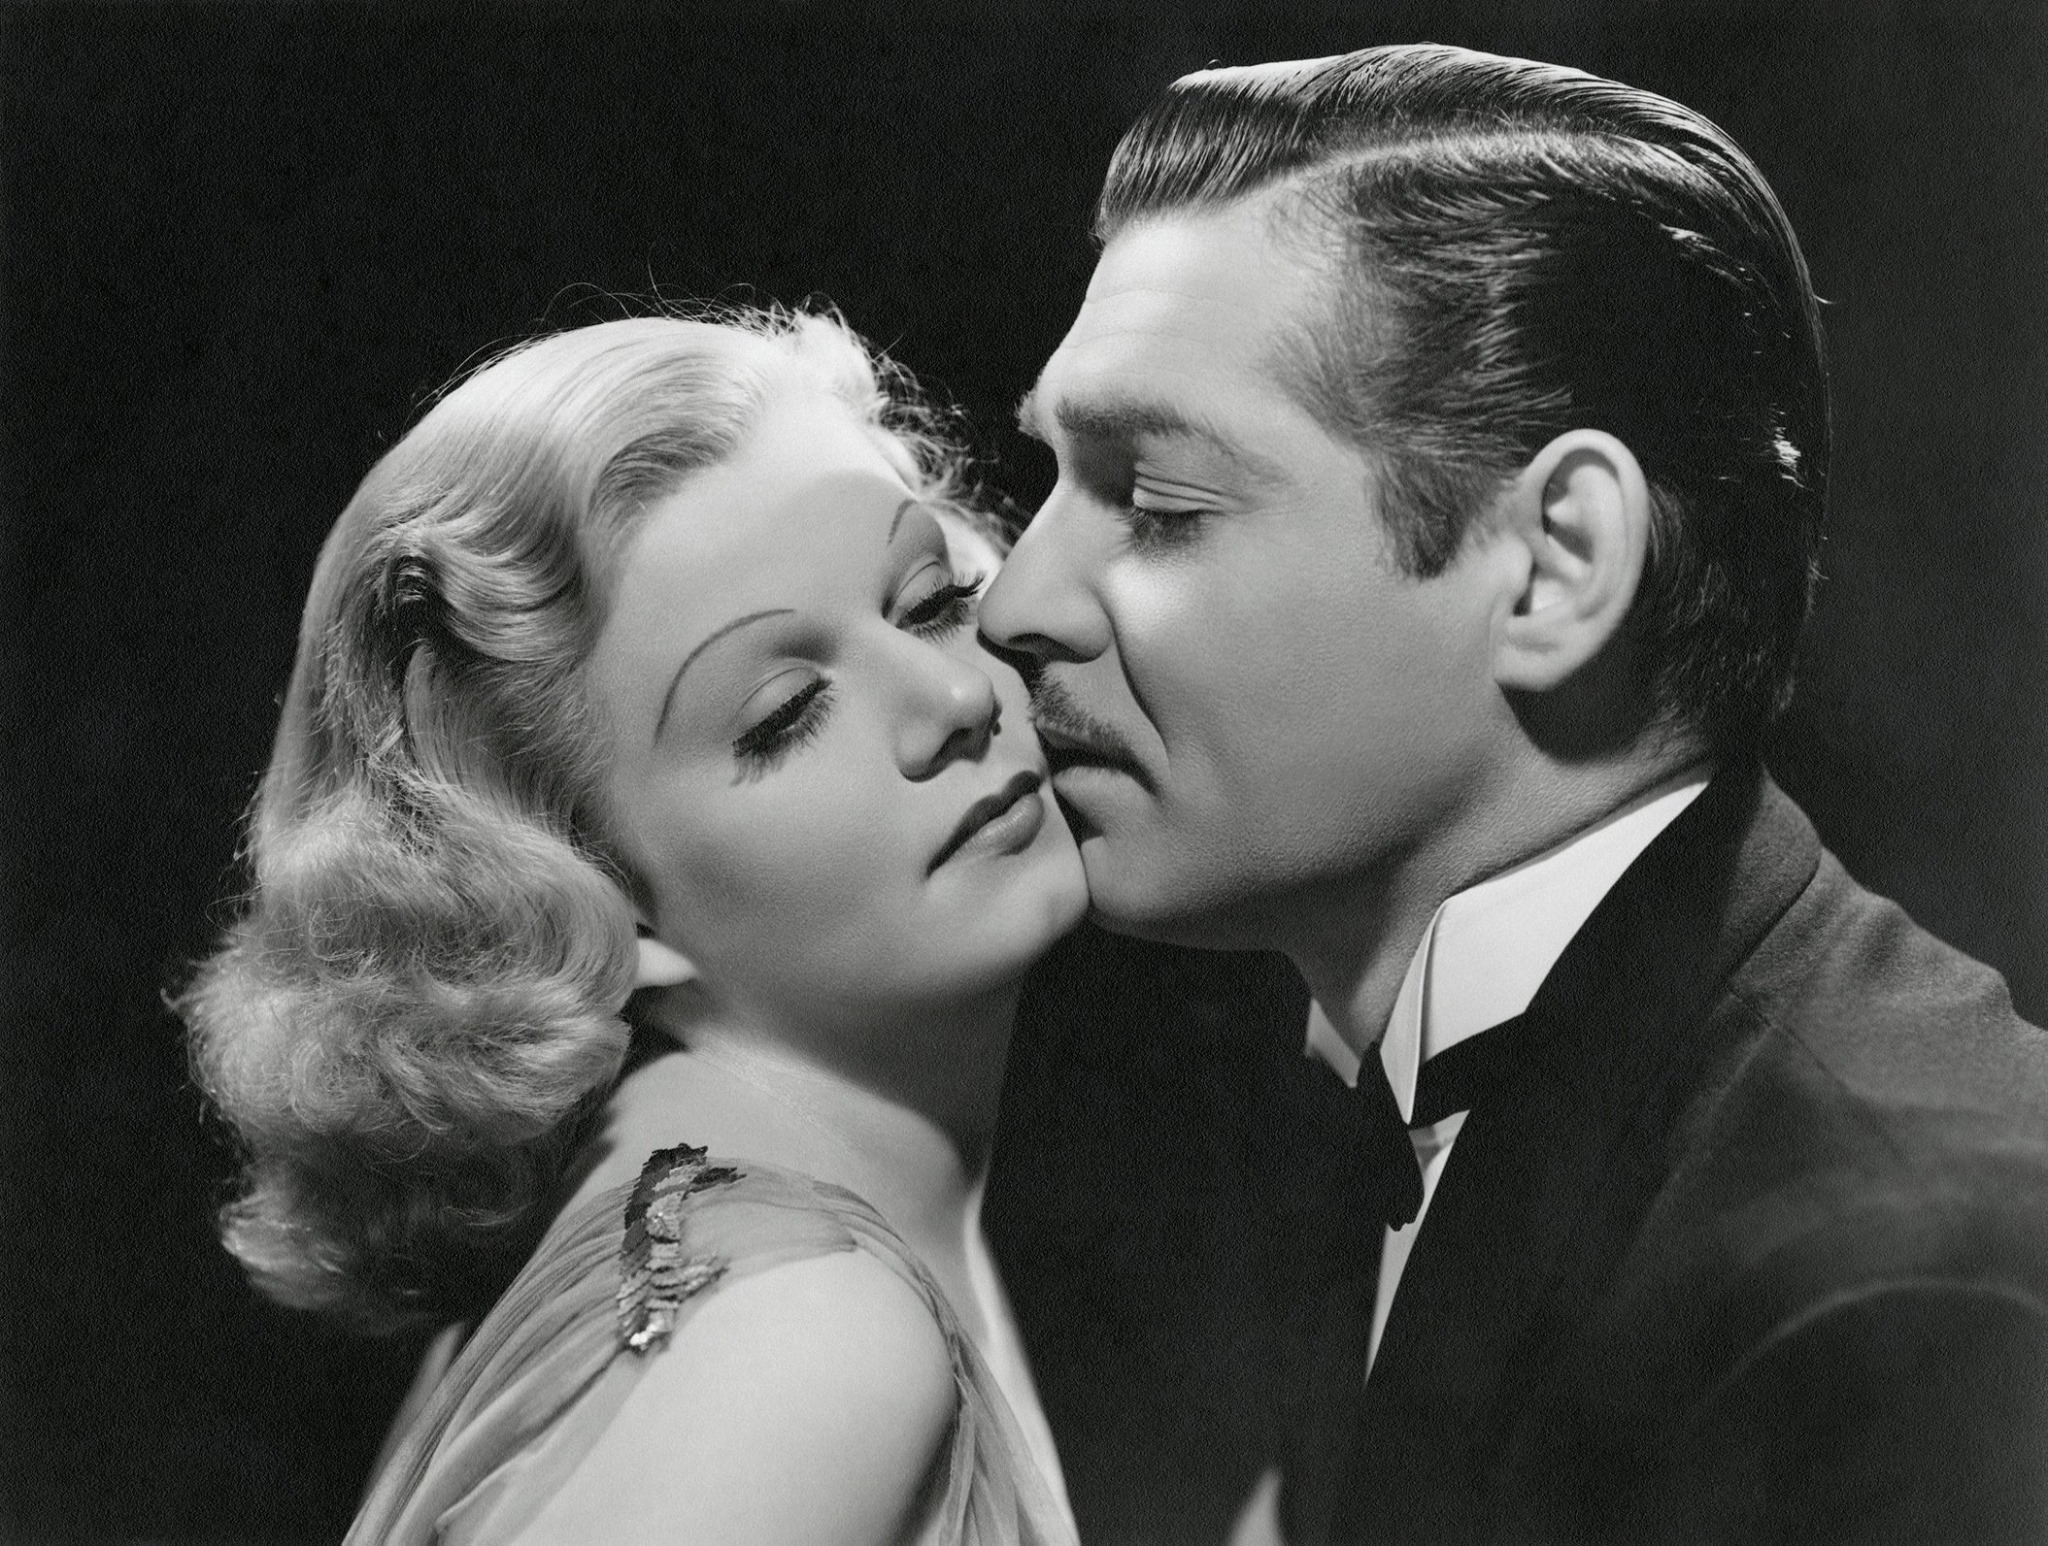 Saratoga, 1937 - Clark Gable & Jean Harlow  Jean Harlow's last film before her death.